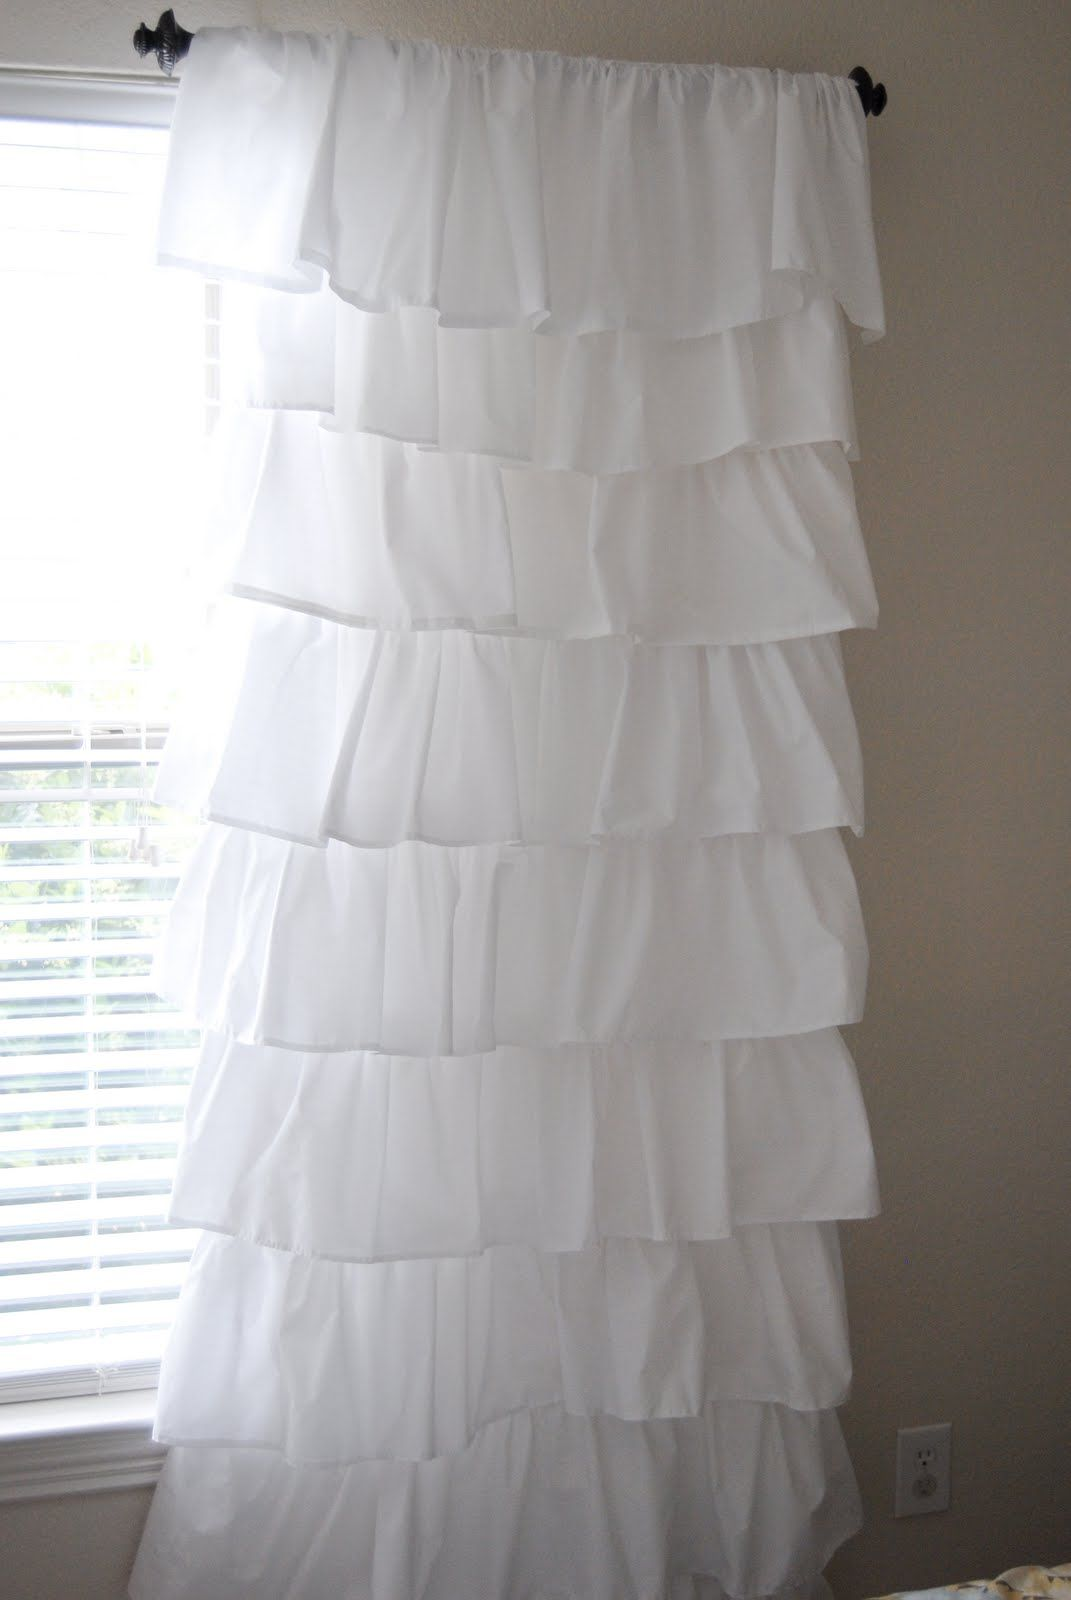 Make Your Own Expensive Looking Ruffled Curtains Using 4 Flat Sheets From So Doing This